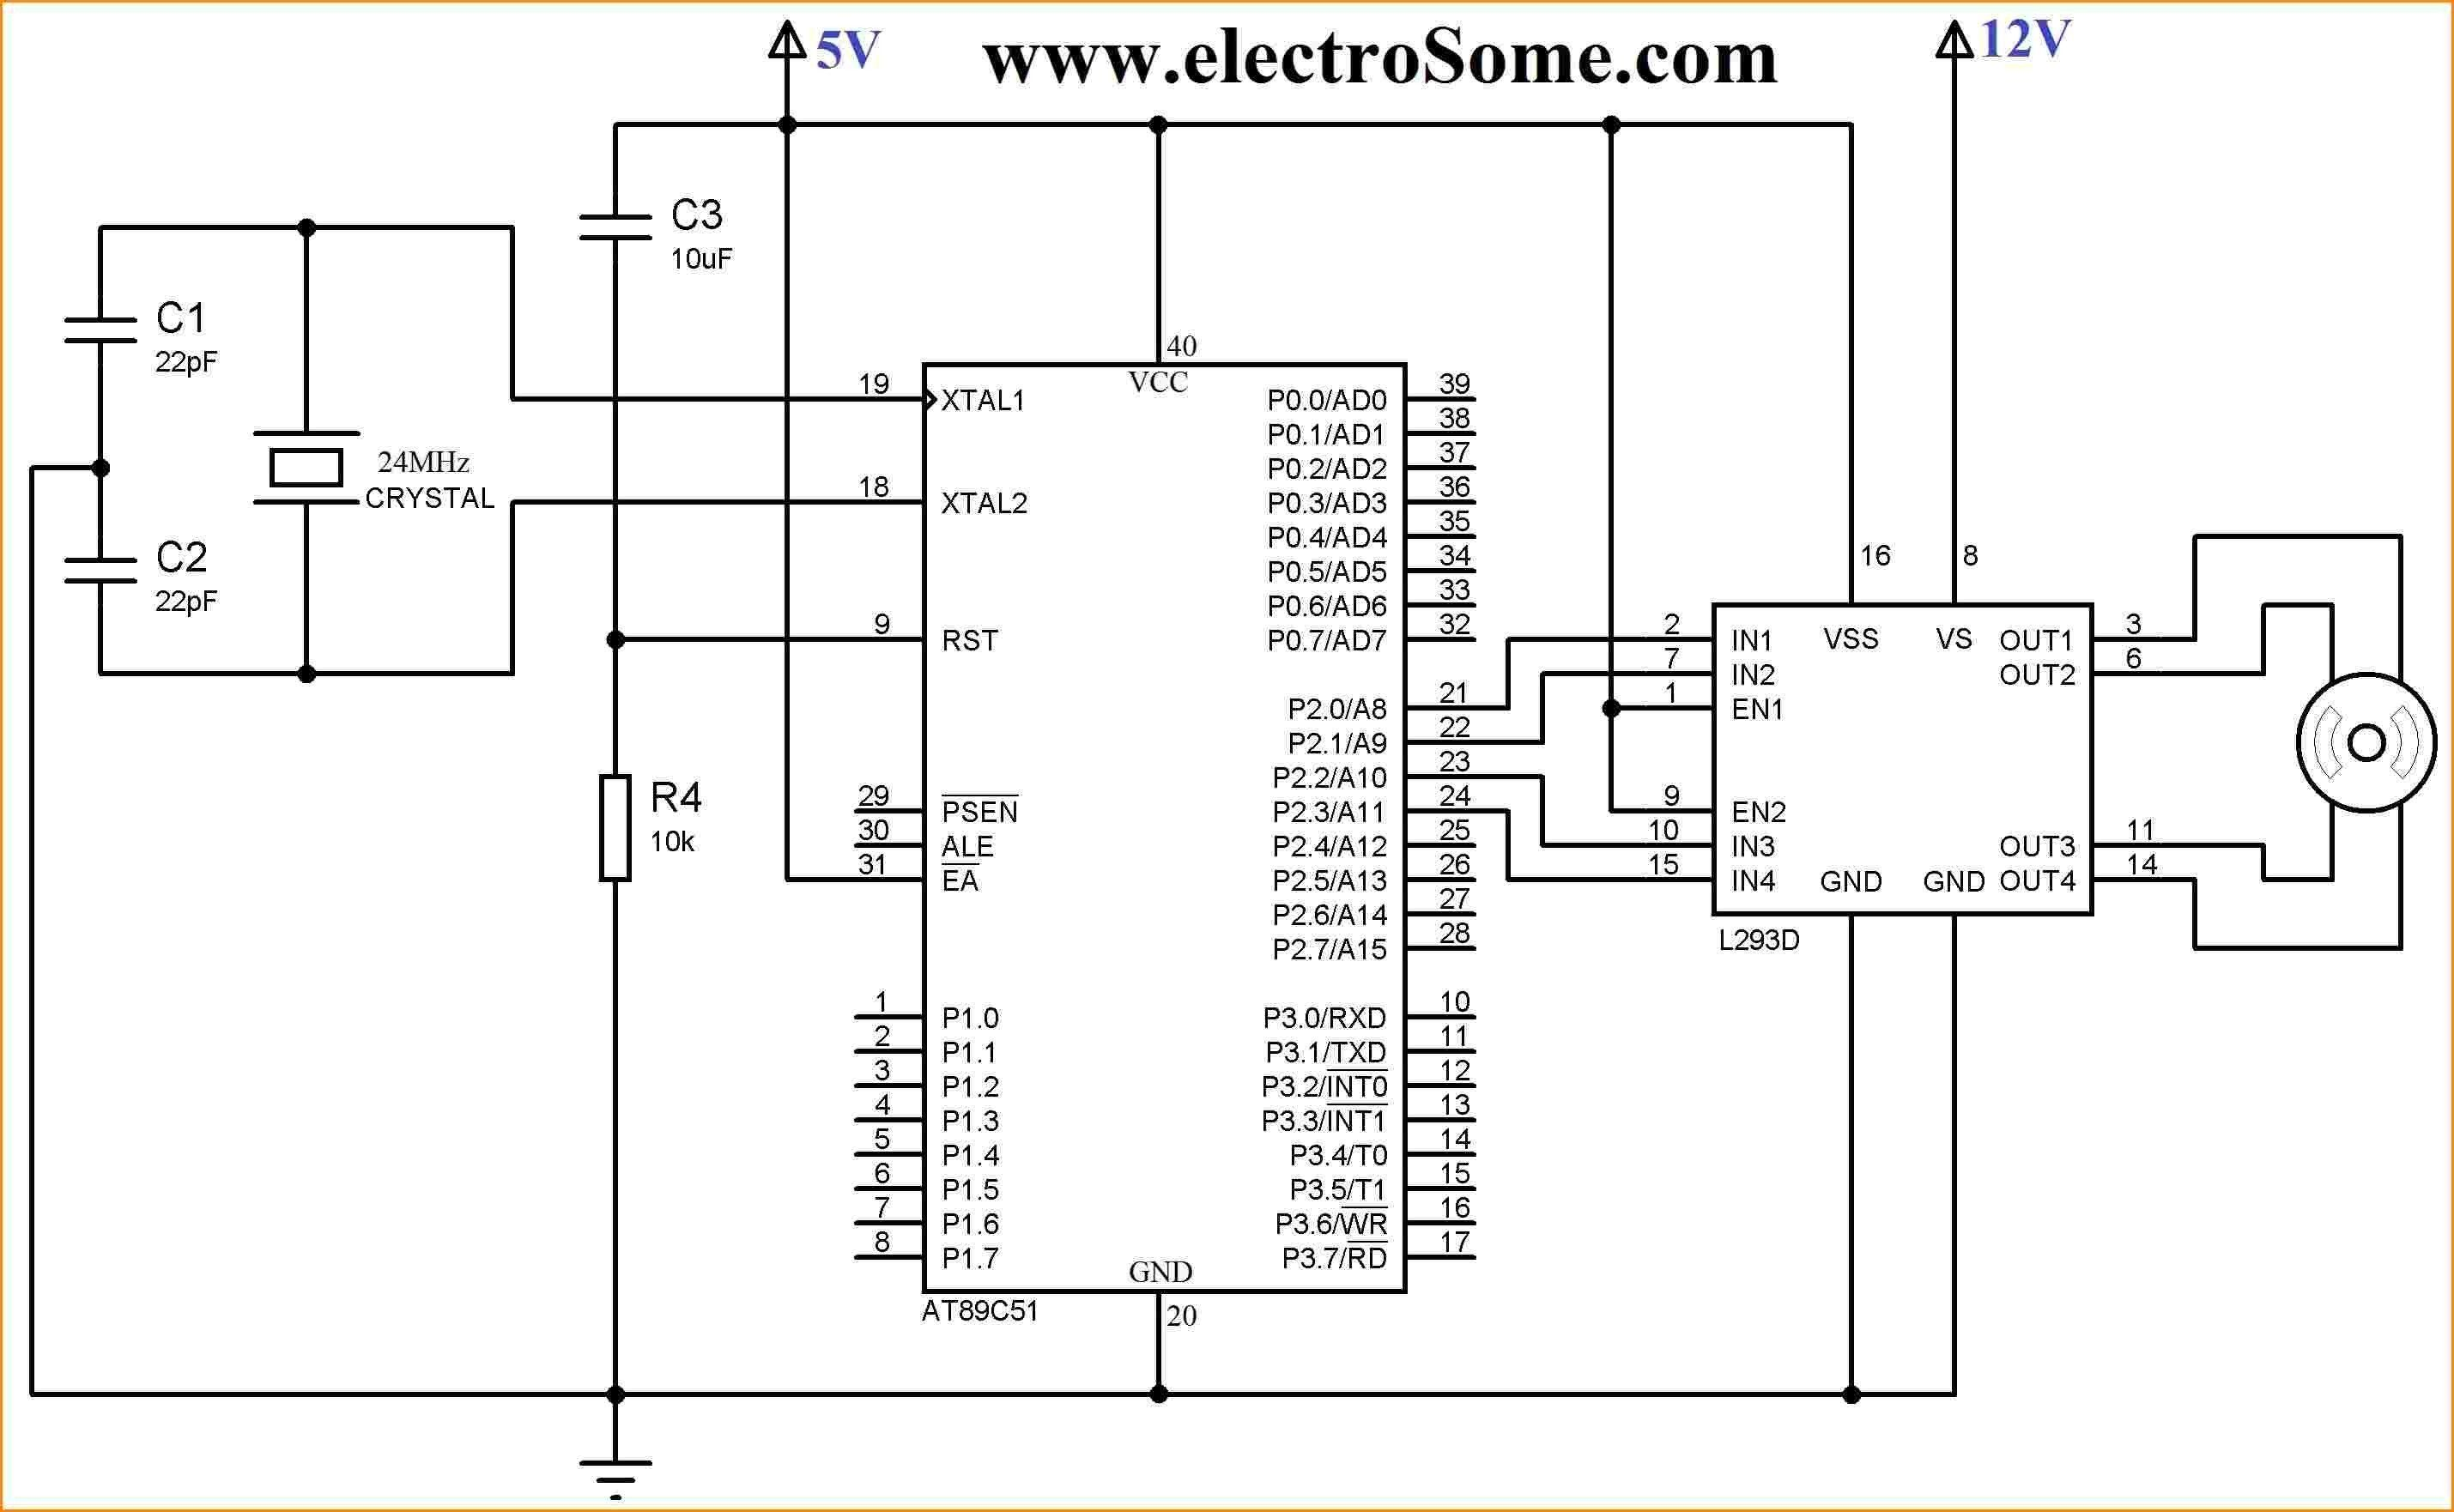 swann security camera n3960 wiring diagram collection electrical for intended for swann n3960